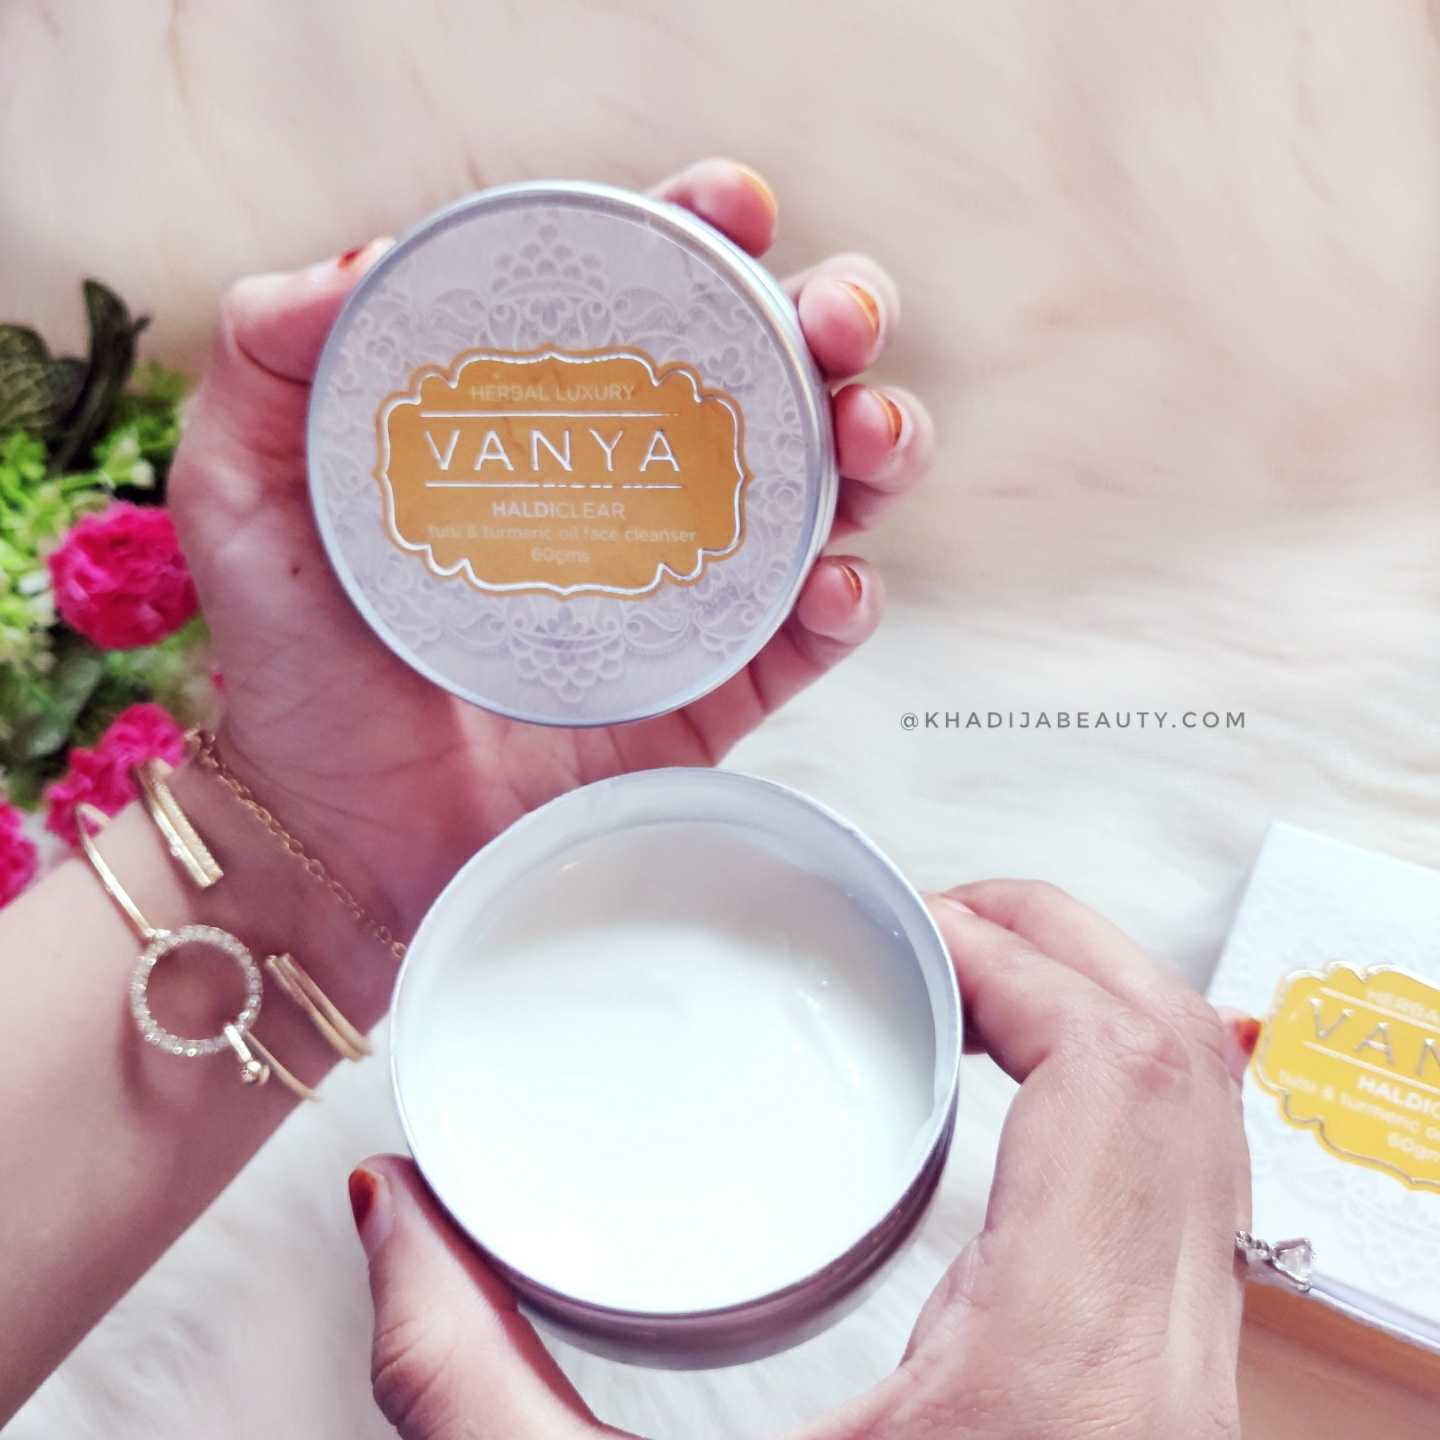 Vanya Haldi clear face cleanser review